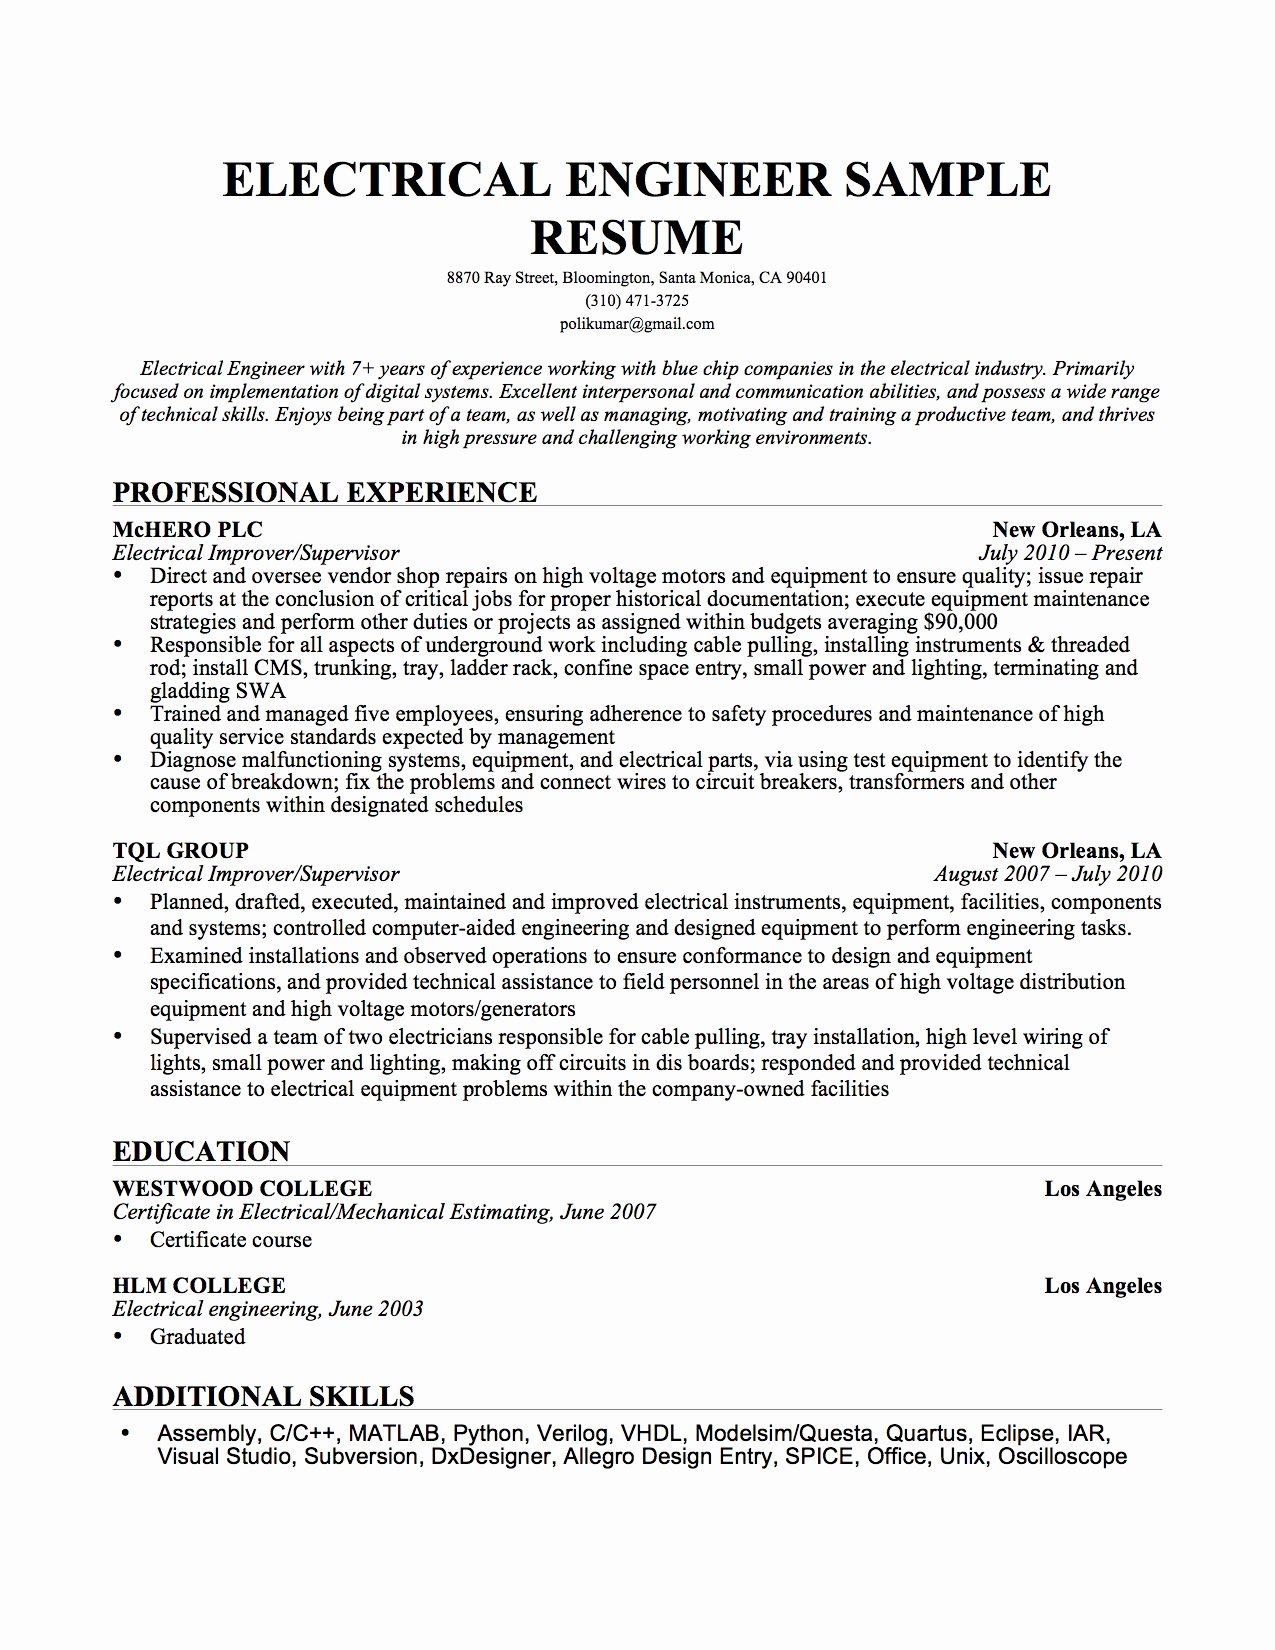 Electrical Engineer Resume Sample New Resume format Resume format Download Electrical Engineering